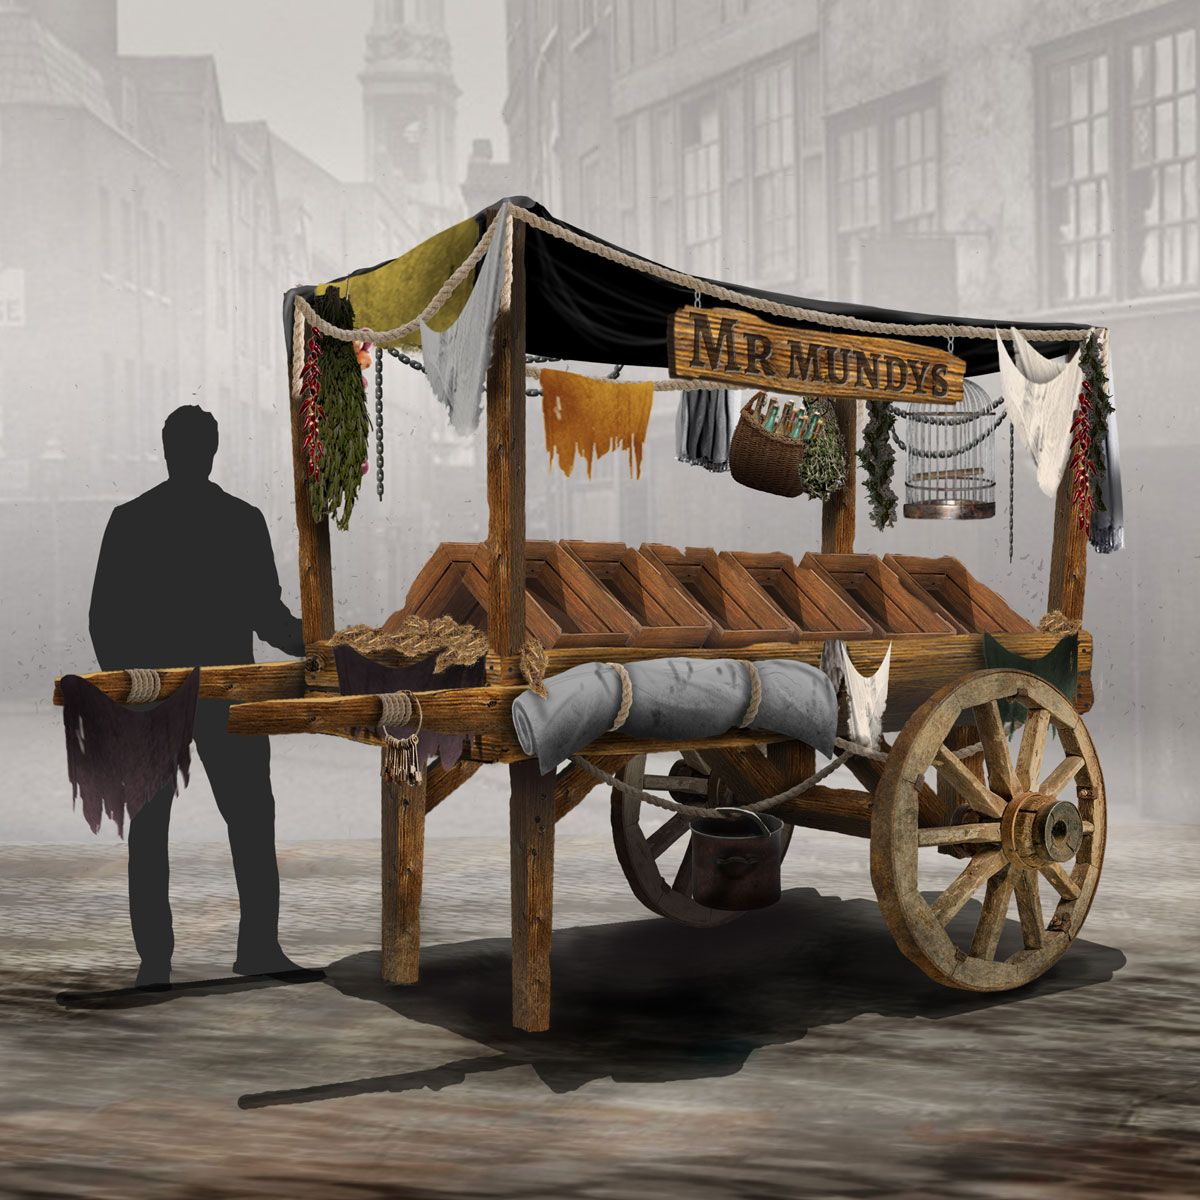 Victorian Street Seller Cart Design